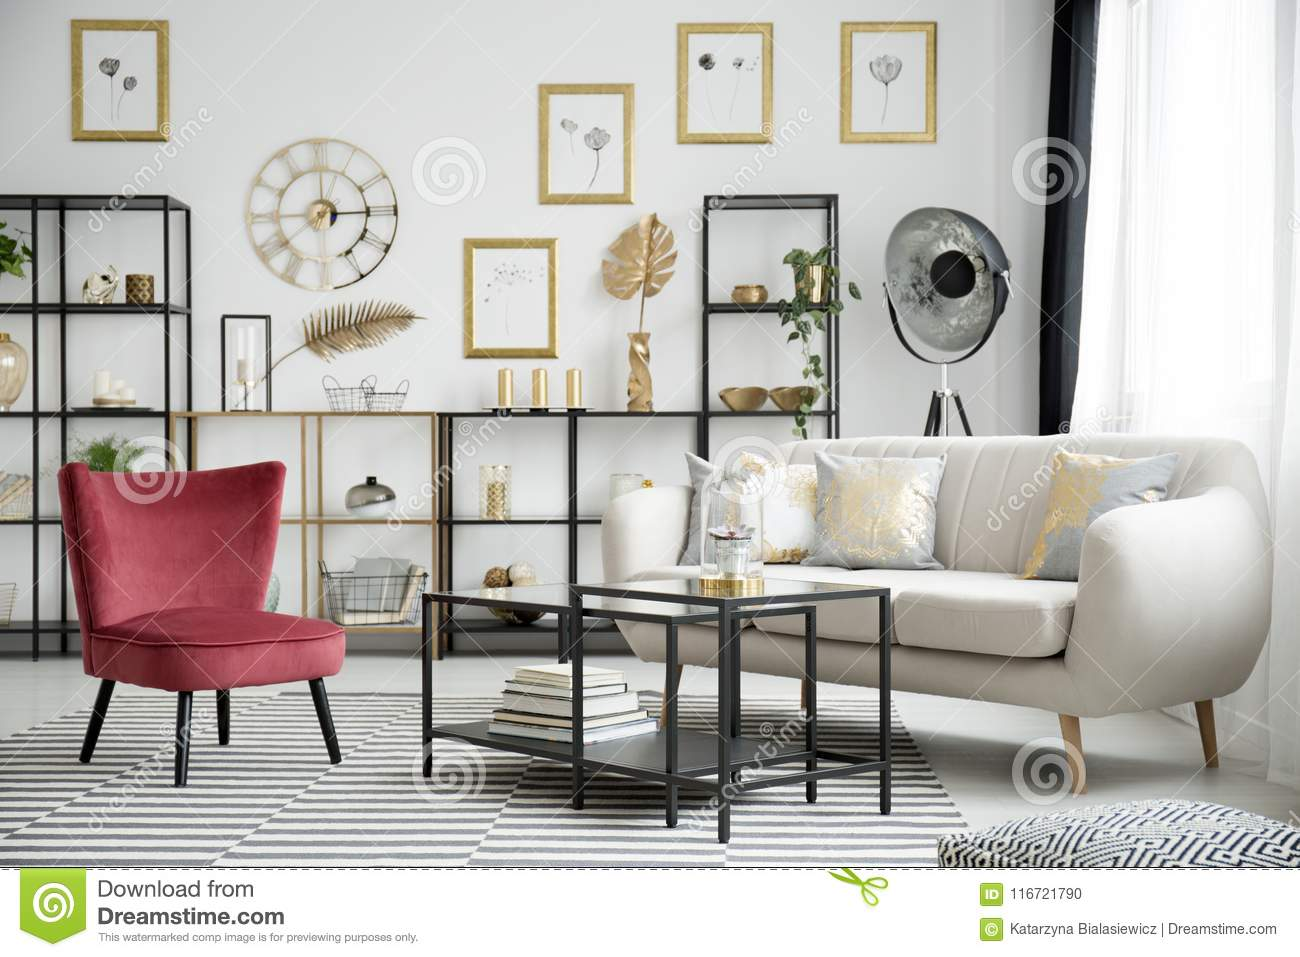 Miraculous Wine Red Armchair And Sofa Stock Photo Image Of Couch Inzonedesignstudio Interior Chair Design Inzonedesignstudiocom